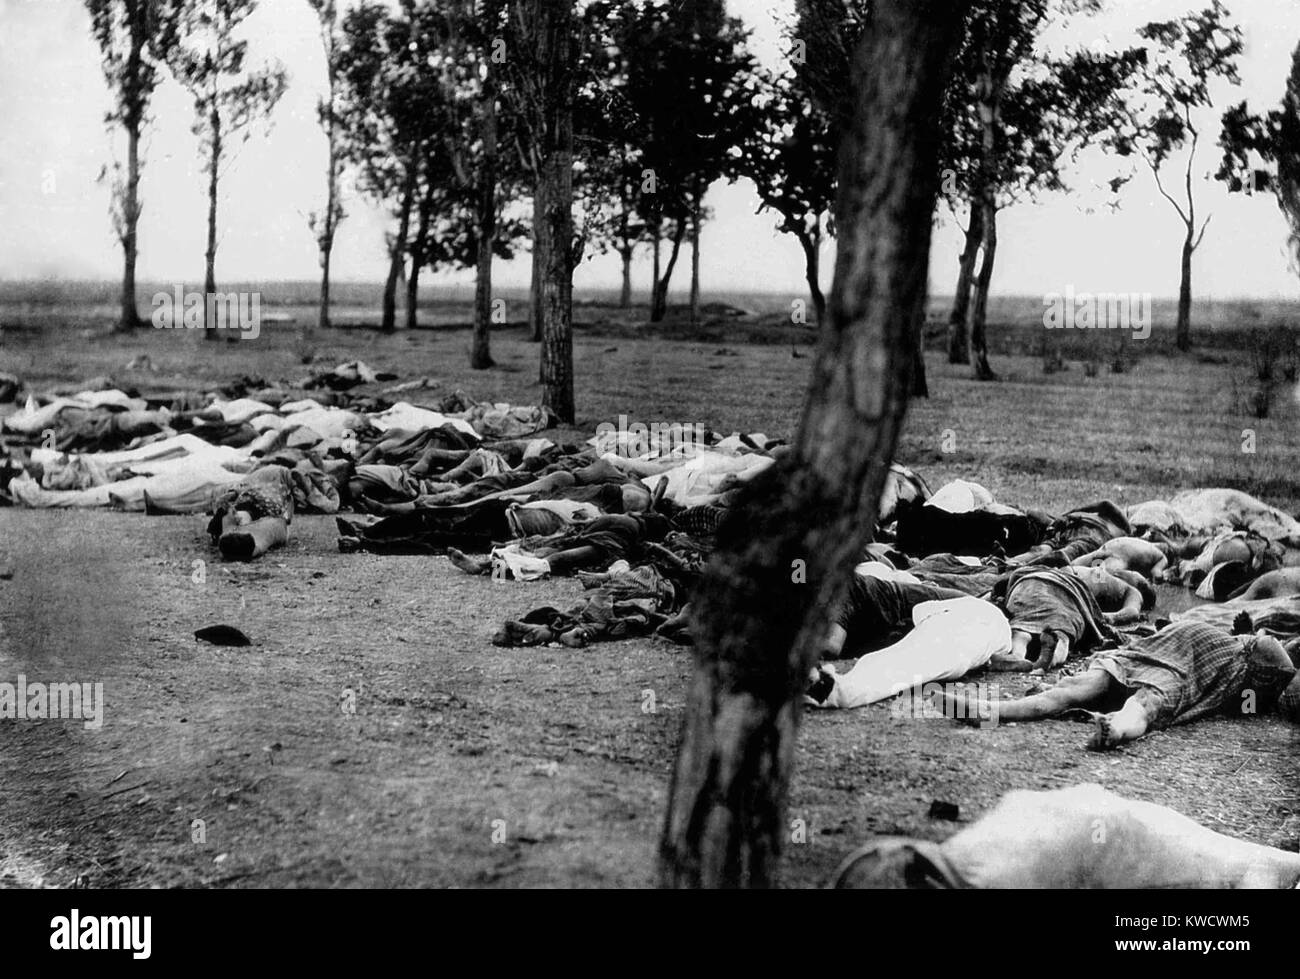 Armenians killed during the Armenian Genocide. Massacre, starvation, and exhaustion destroyed the larger part of - Stock Image